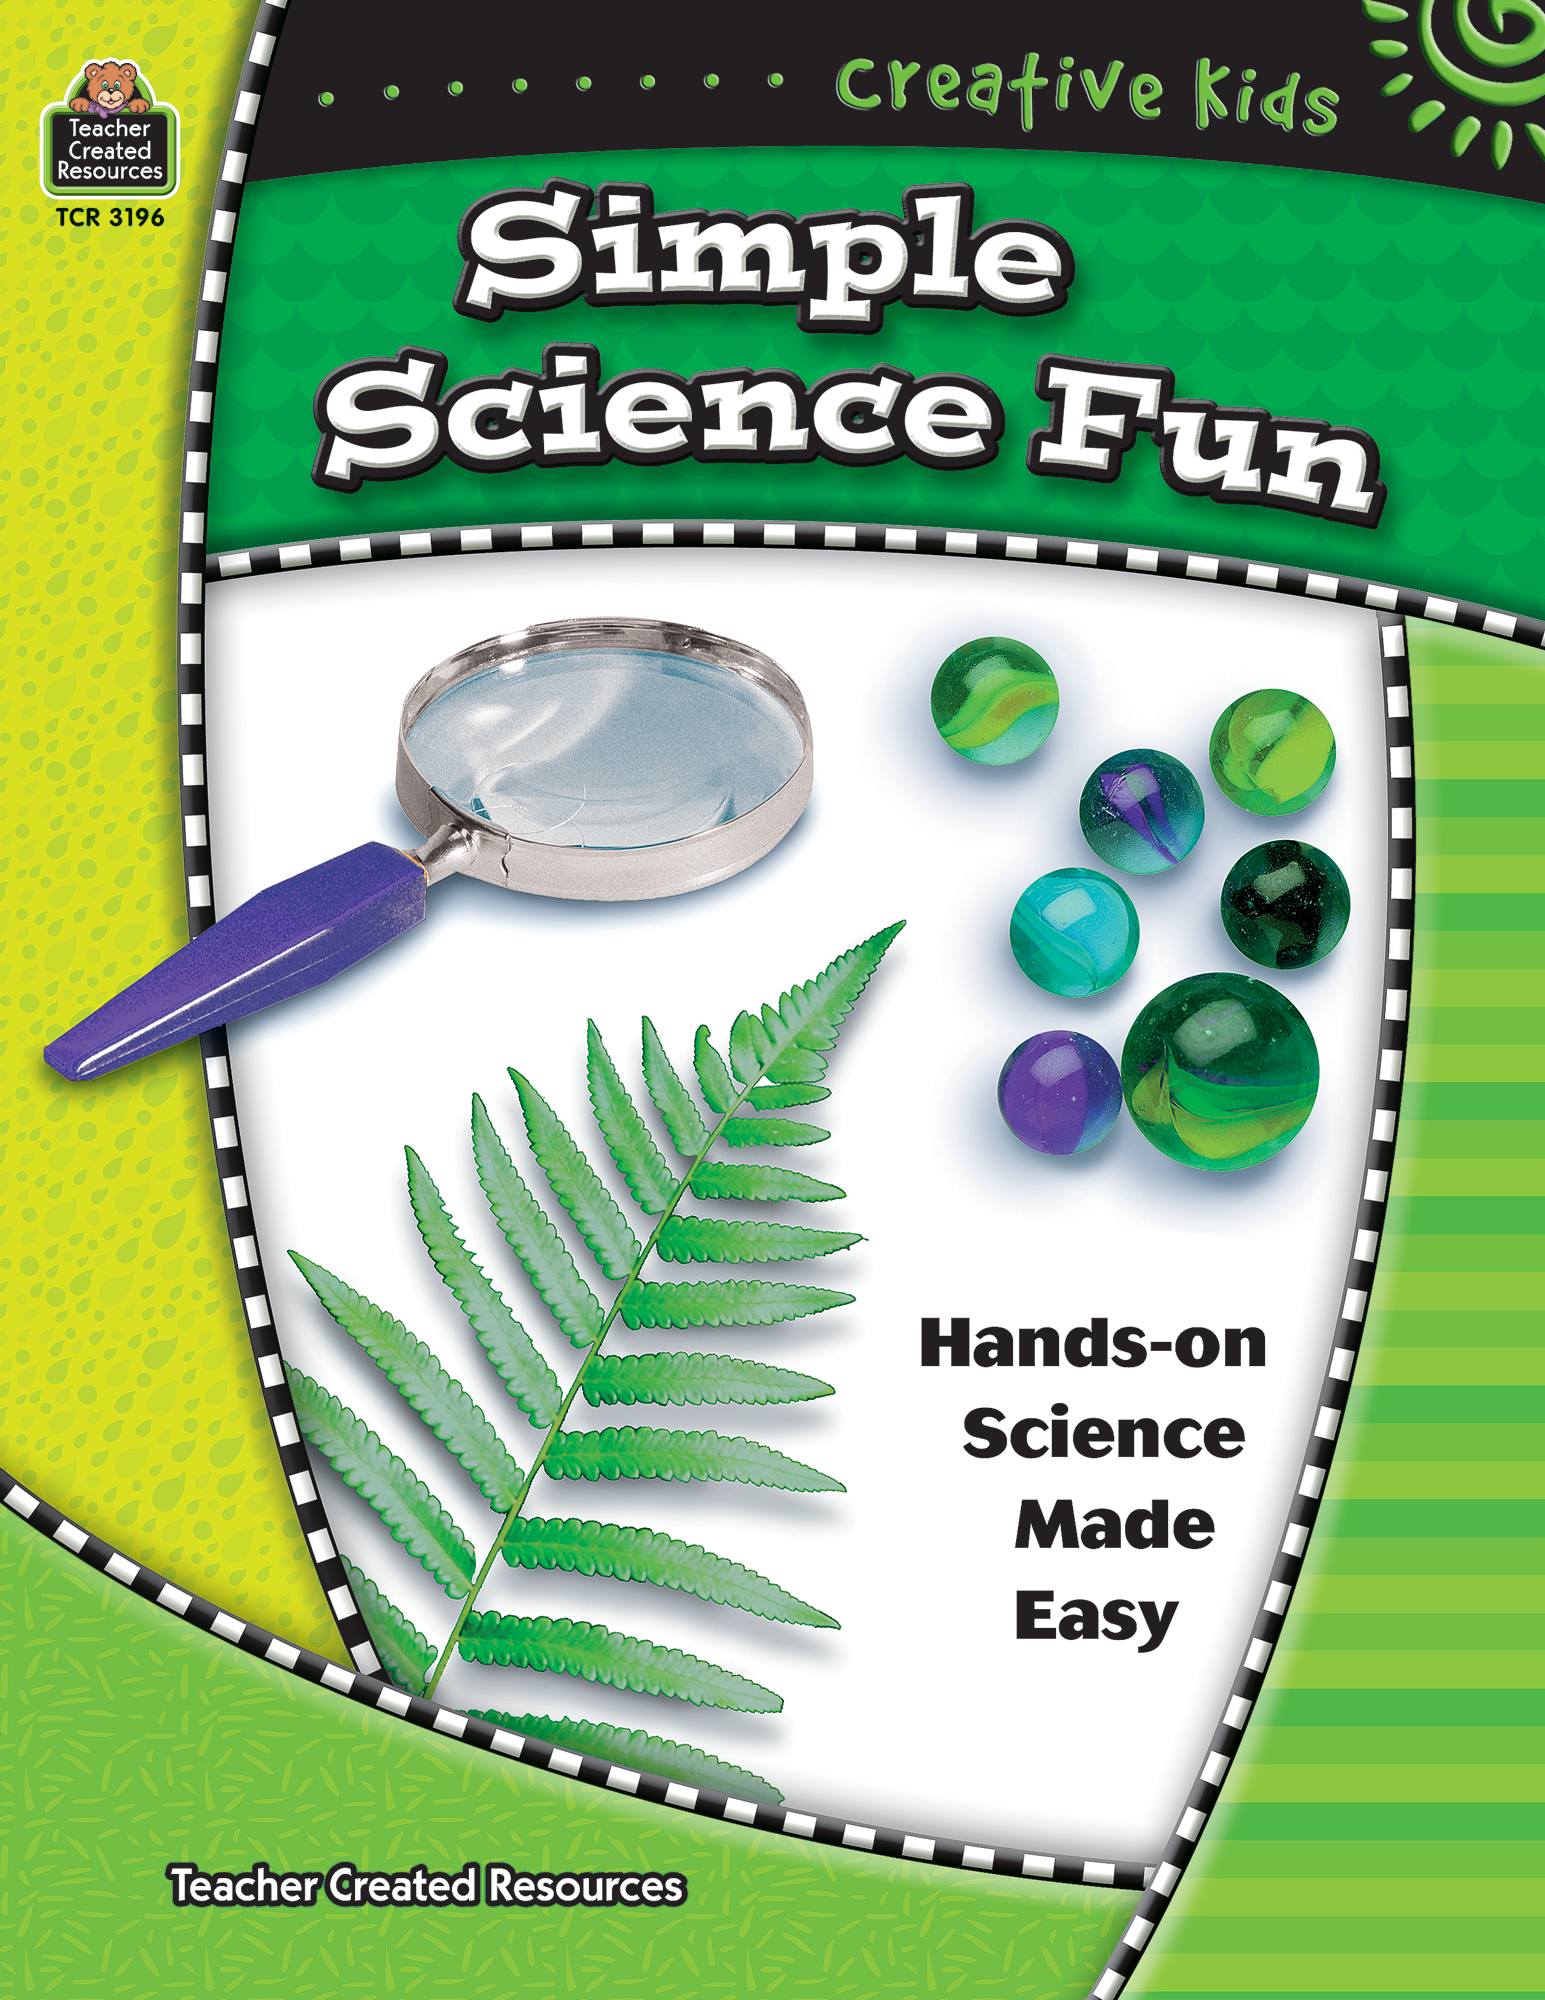 Creative kids simple science fun tcr3196 teacher for Creative simple